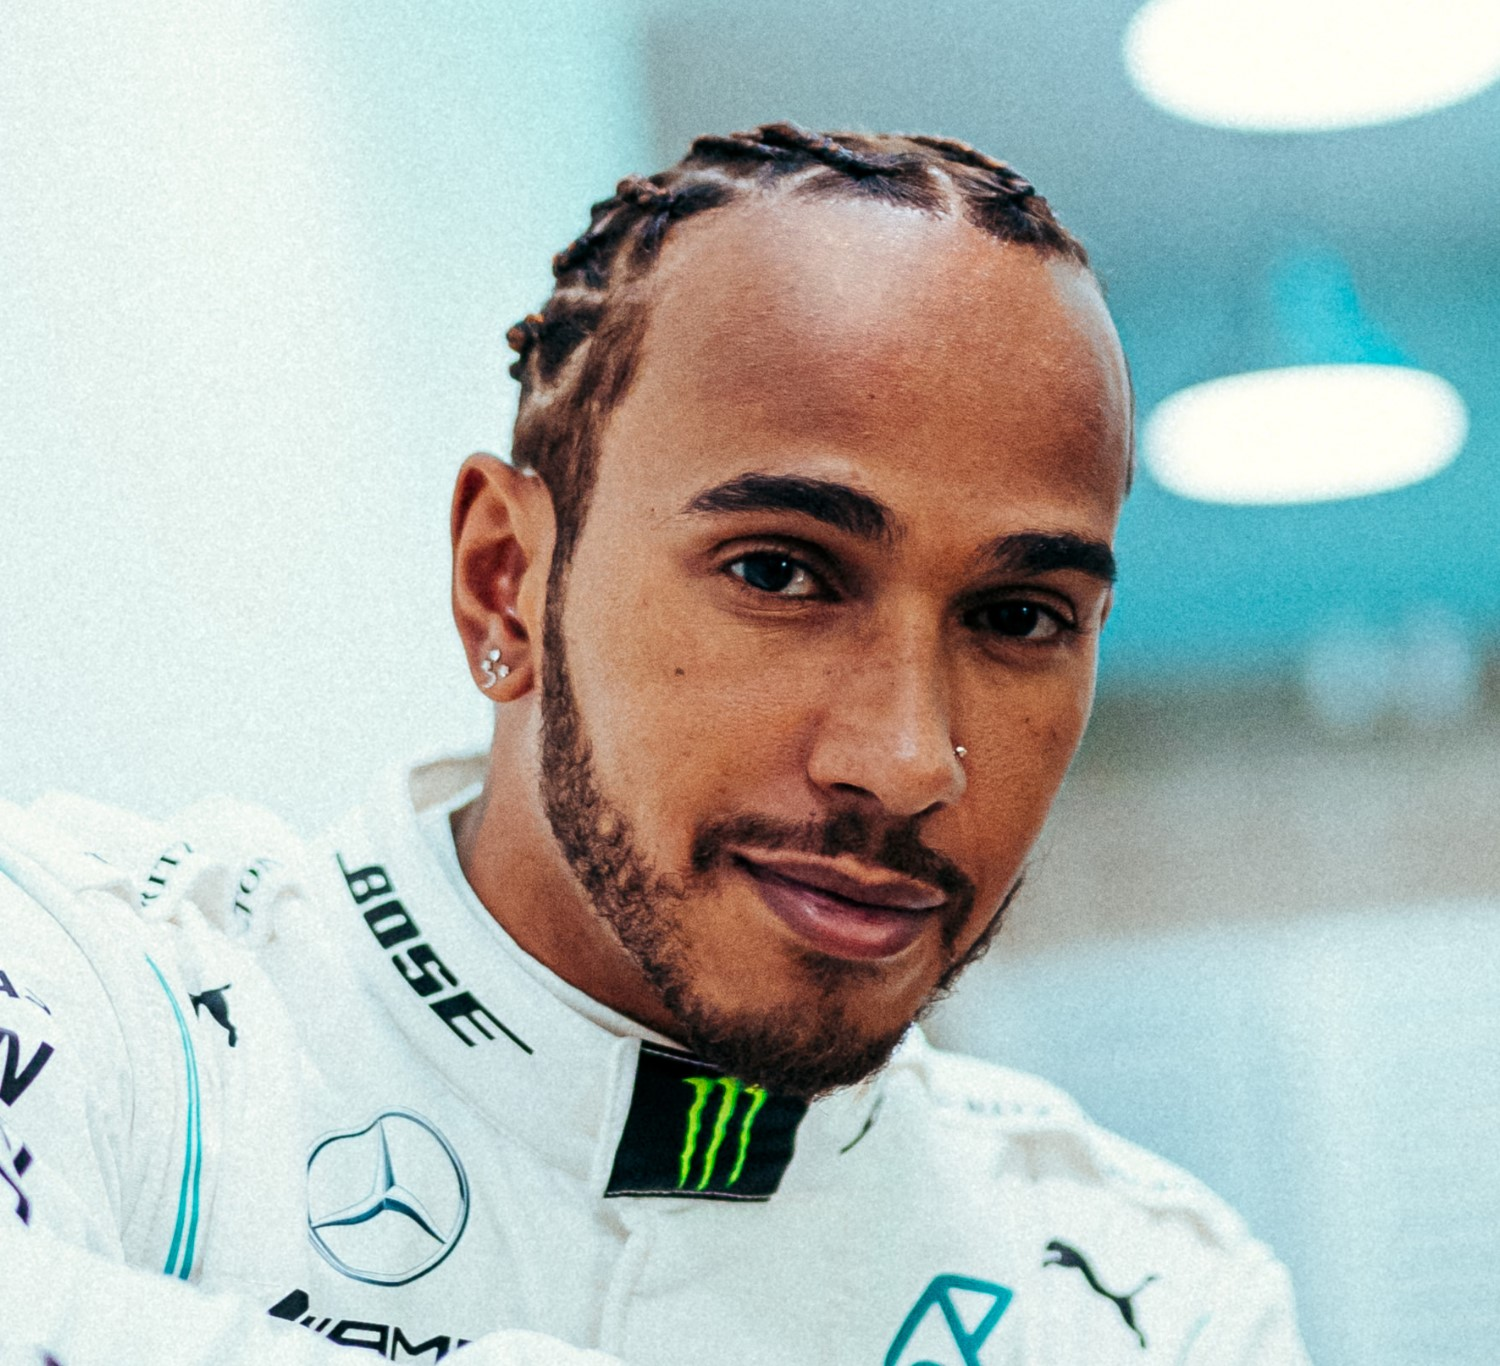 Hamilton confident he has a winning car